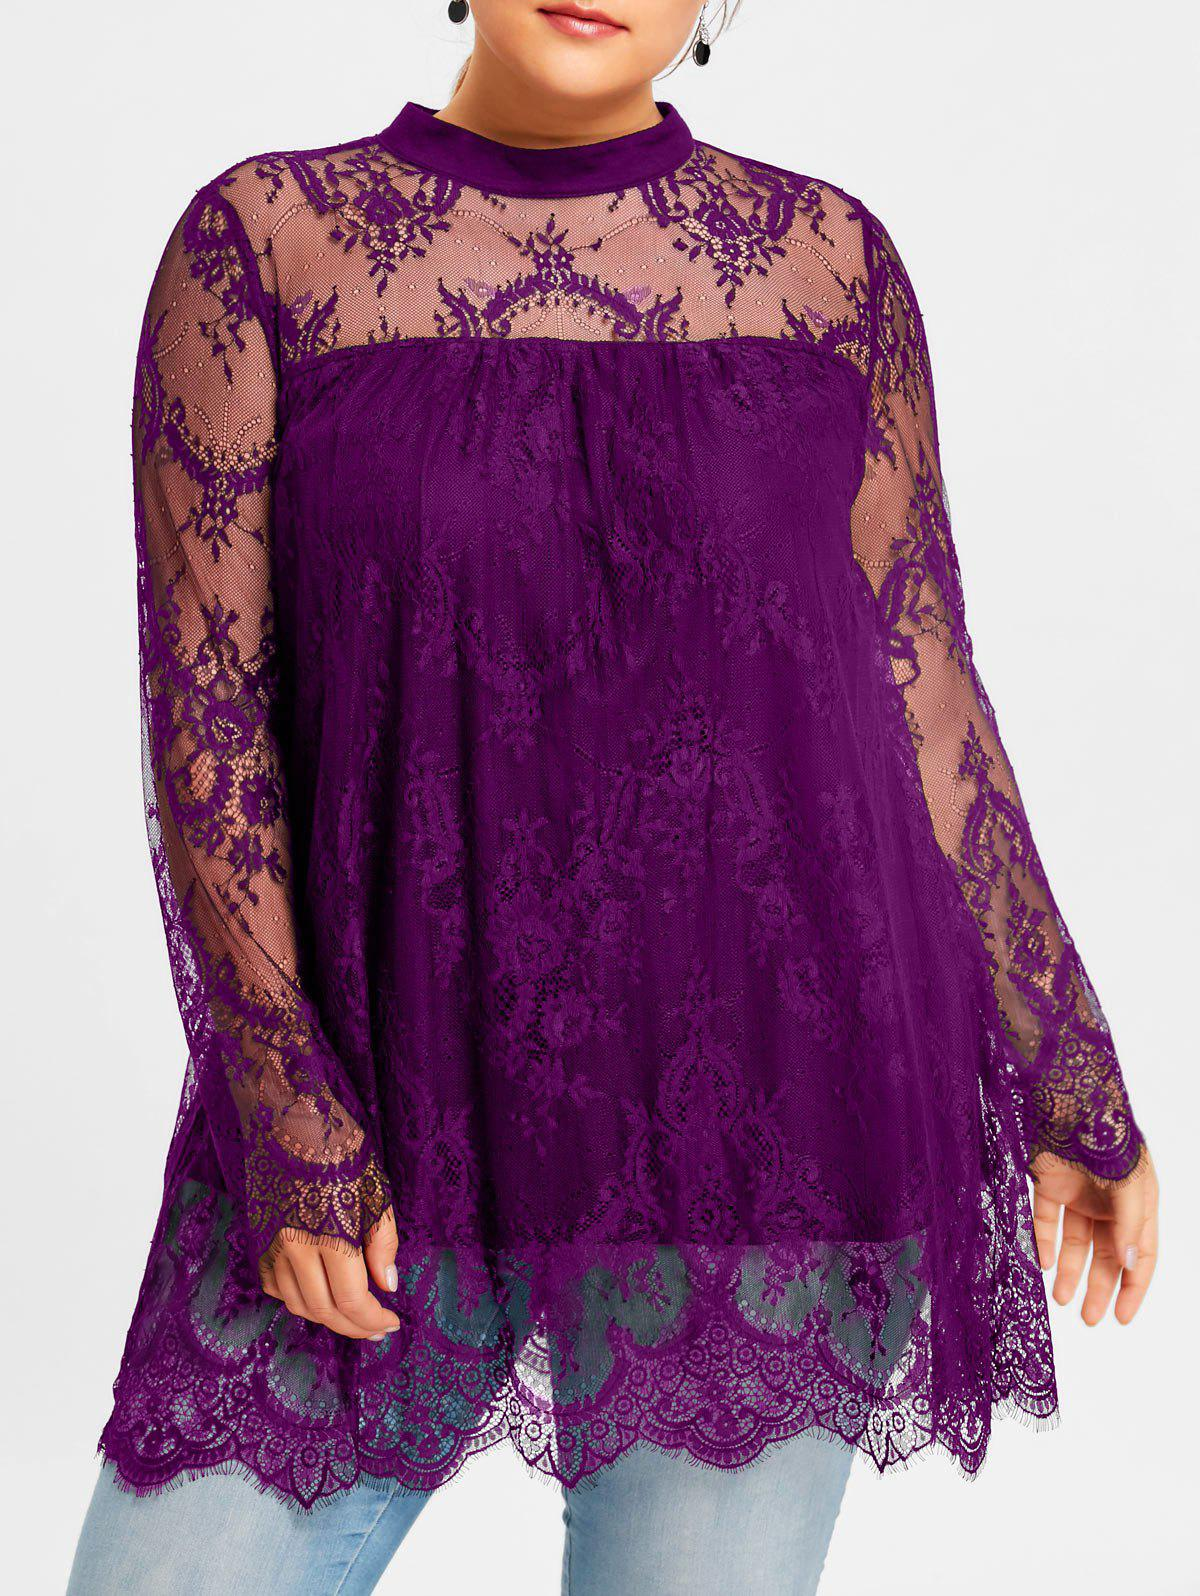 Plus Size Lace Sheer Scalloped Edge Blouse plus size printed sheer lace blouse with cami top